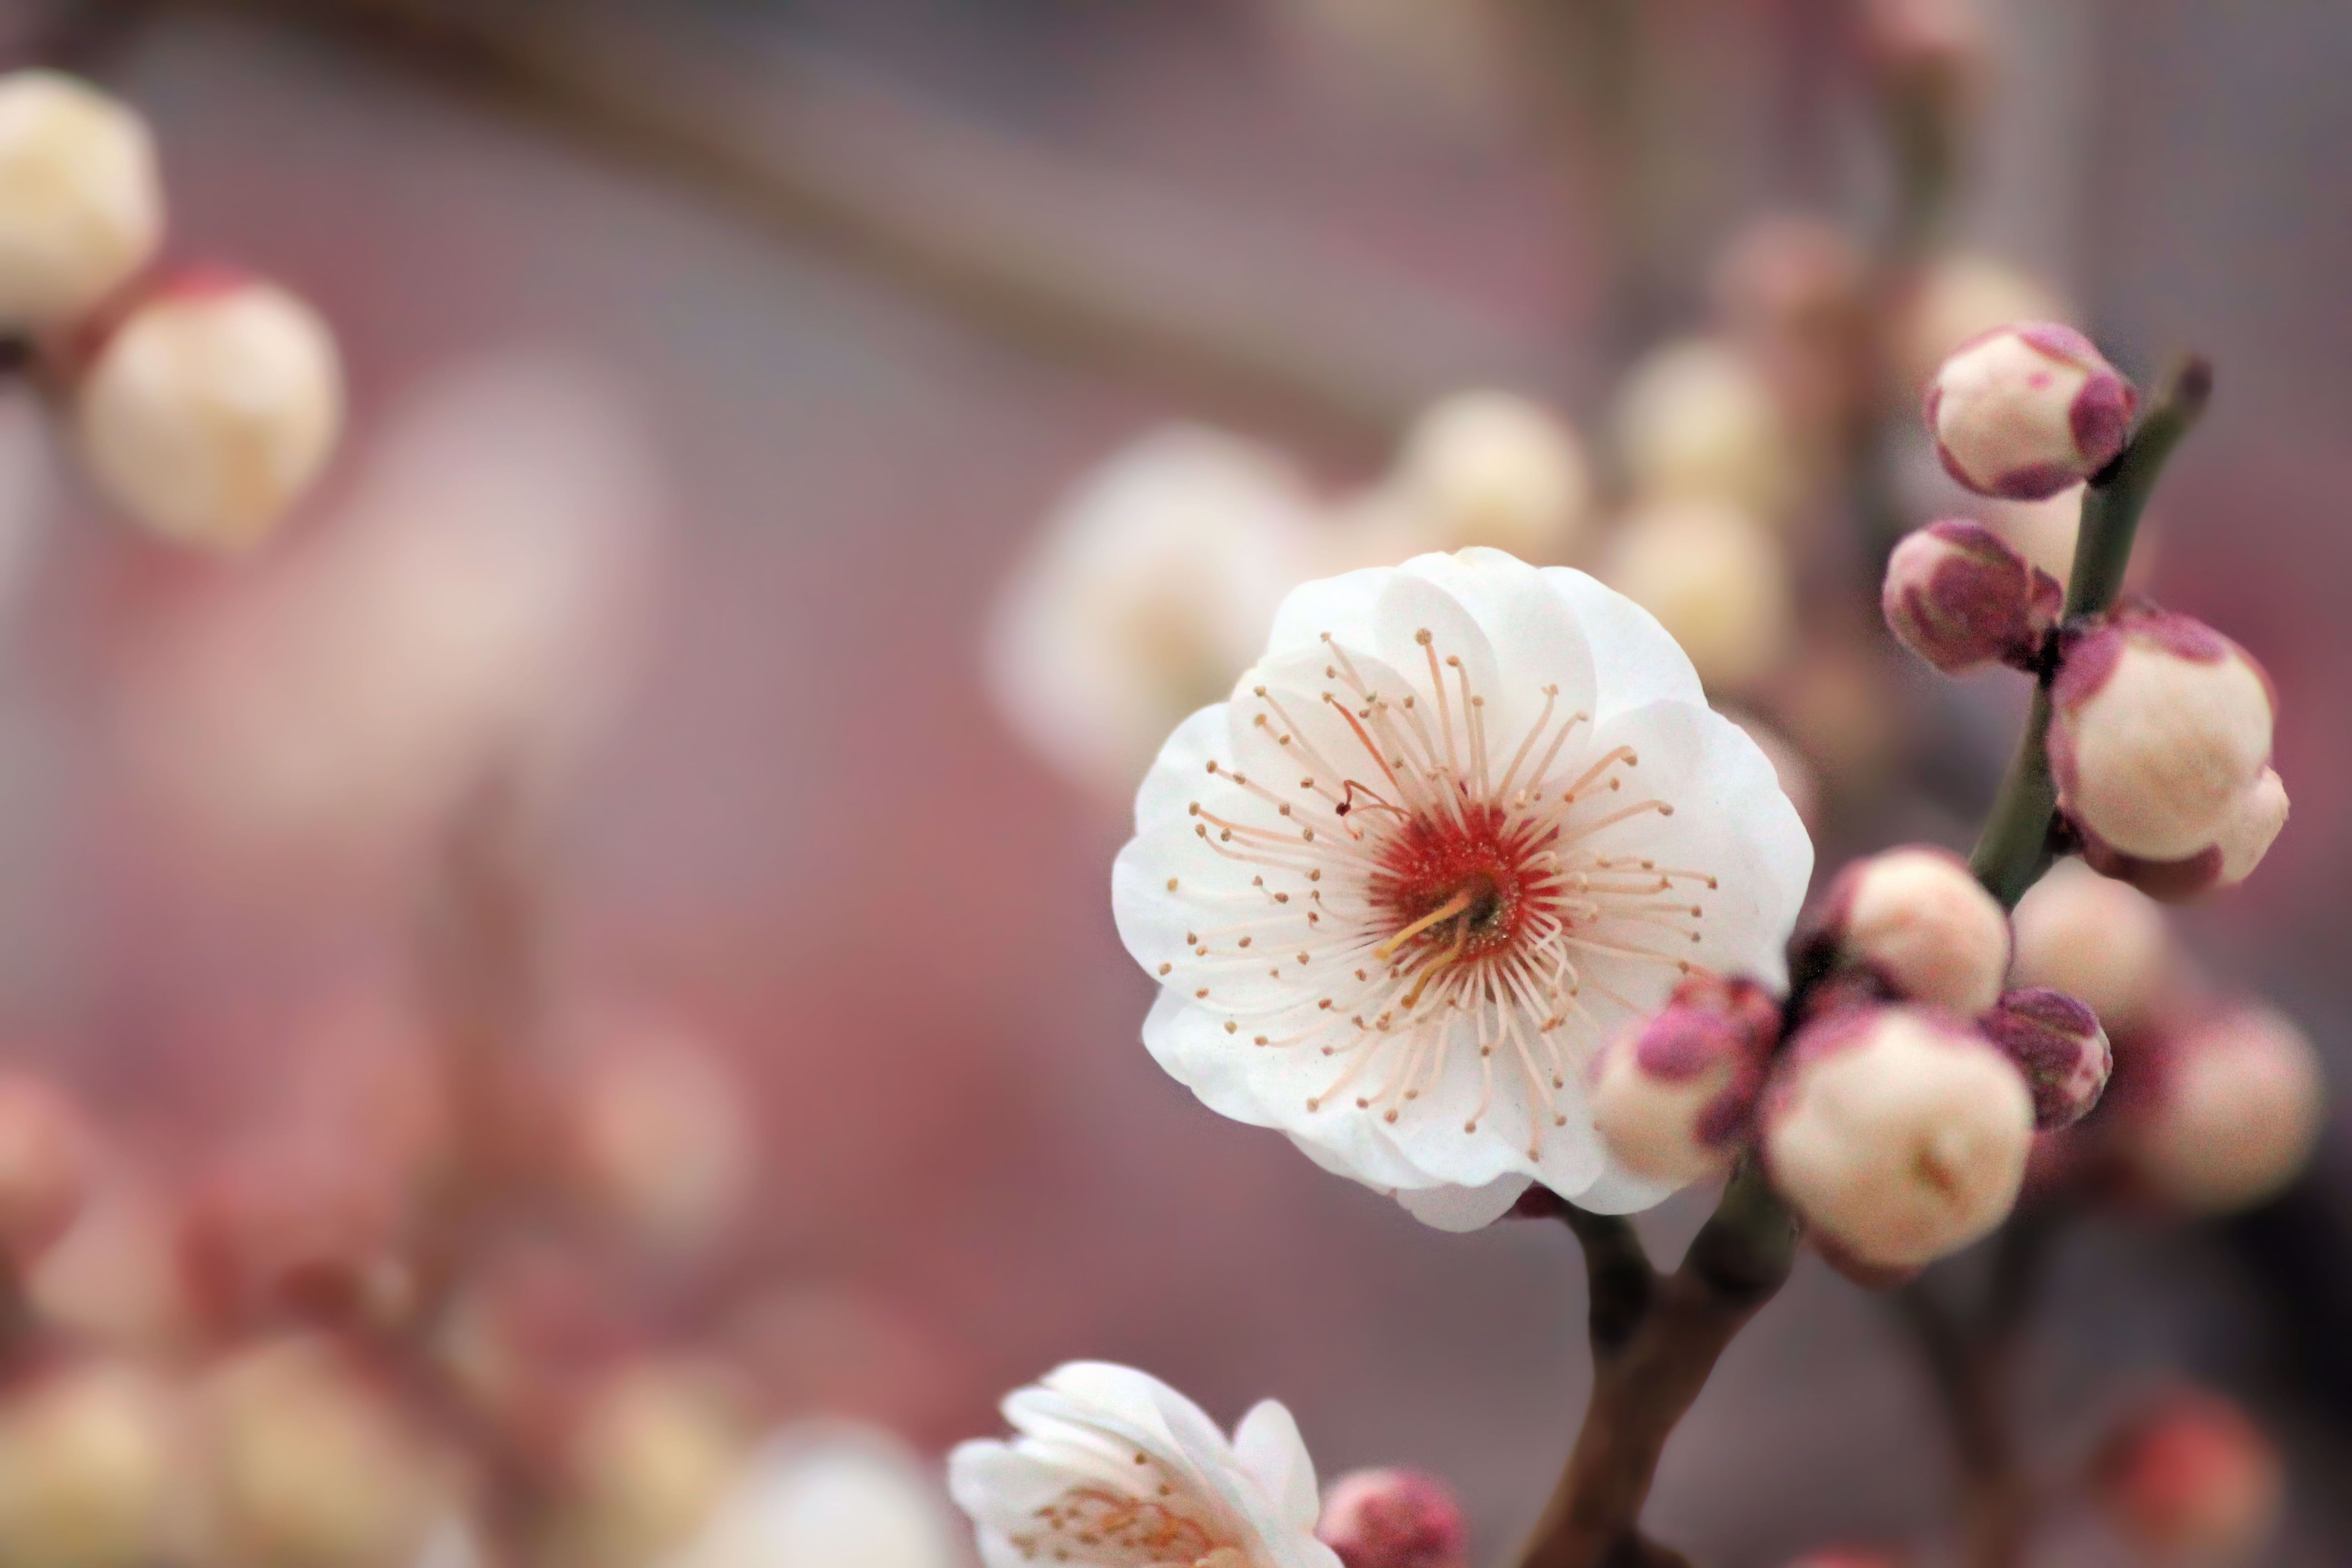 Macro Photography Of White Cherry Blossom Flower To Use Texture Background M In 2020 Macro Photography Flowers Macro Photography Nature Flowers Photography Beautiful